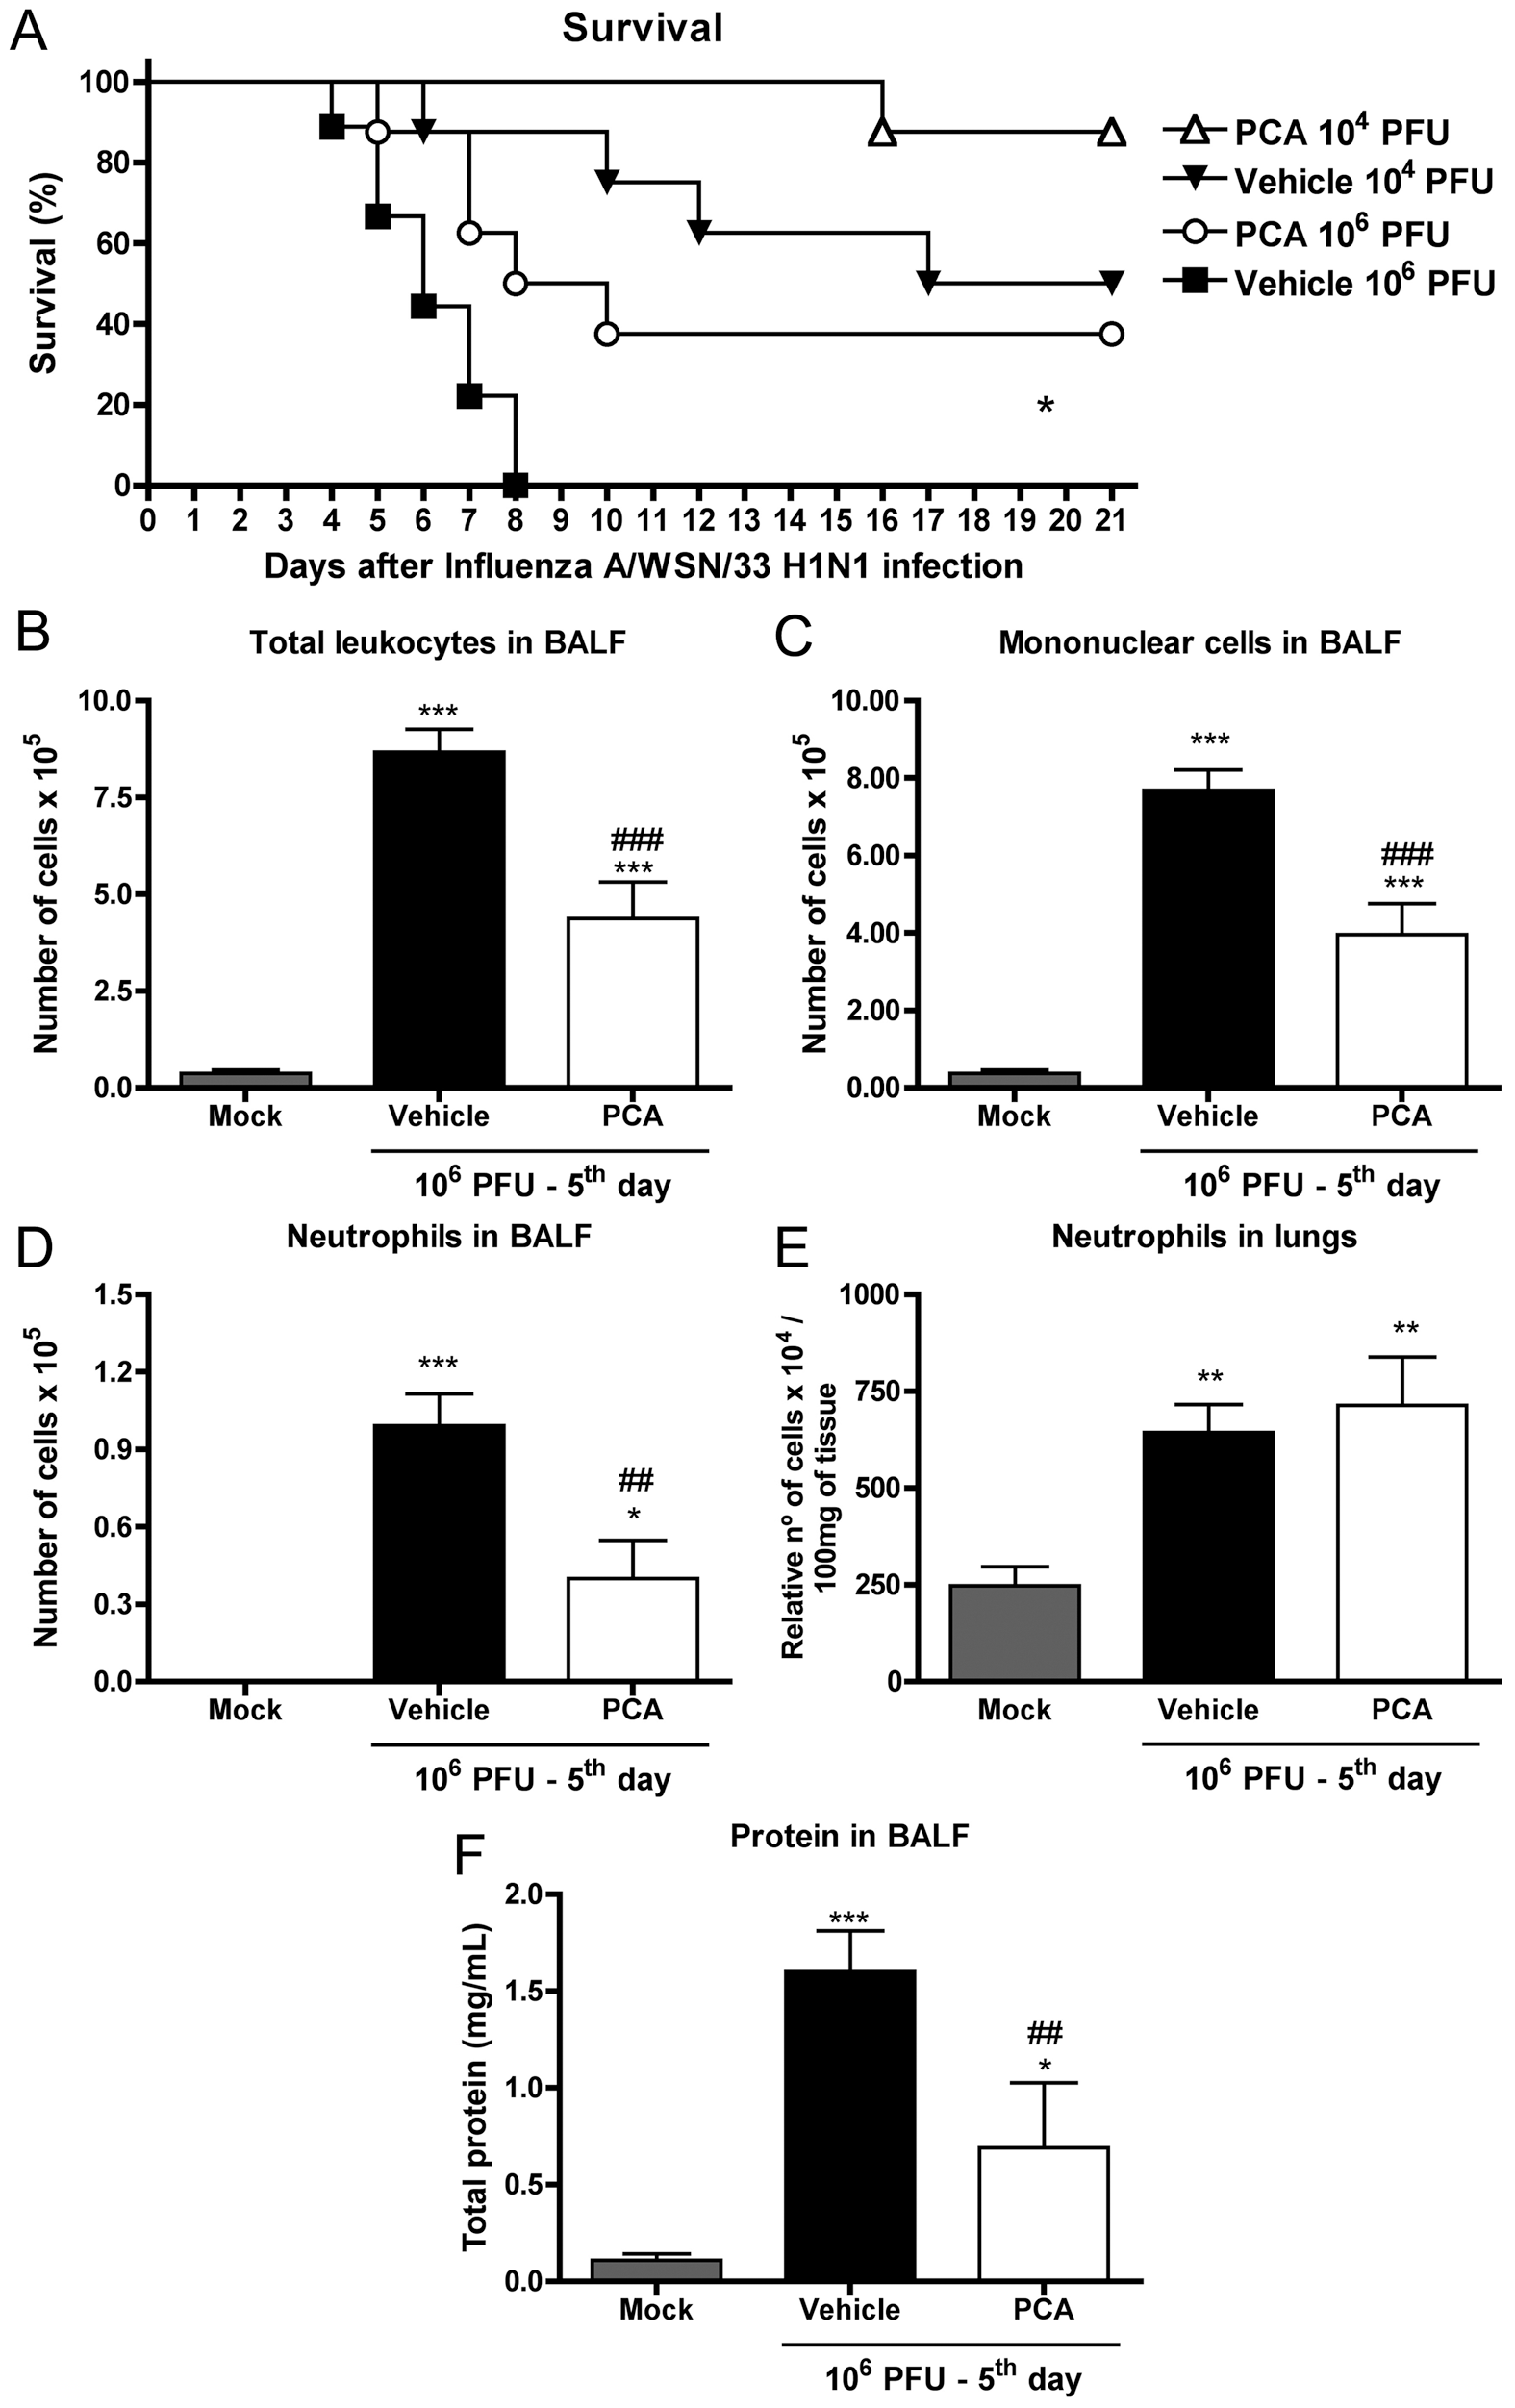 Treatment with a PAFR antagonist confers protection to mice infected with Influenza A/WSN/33 H1N1.